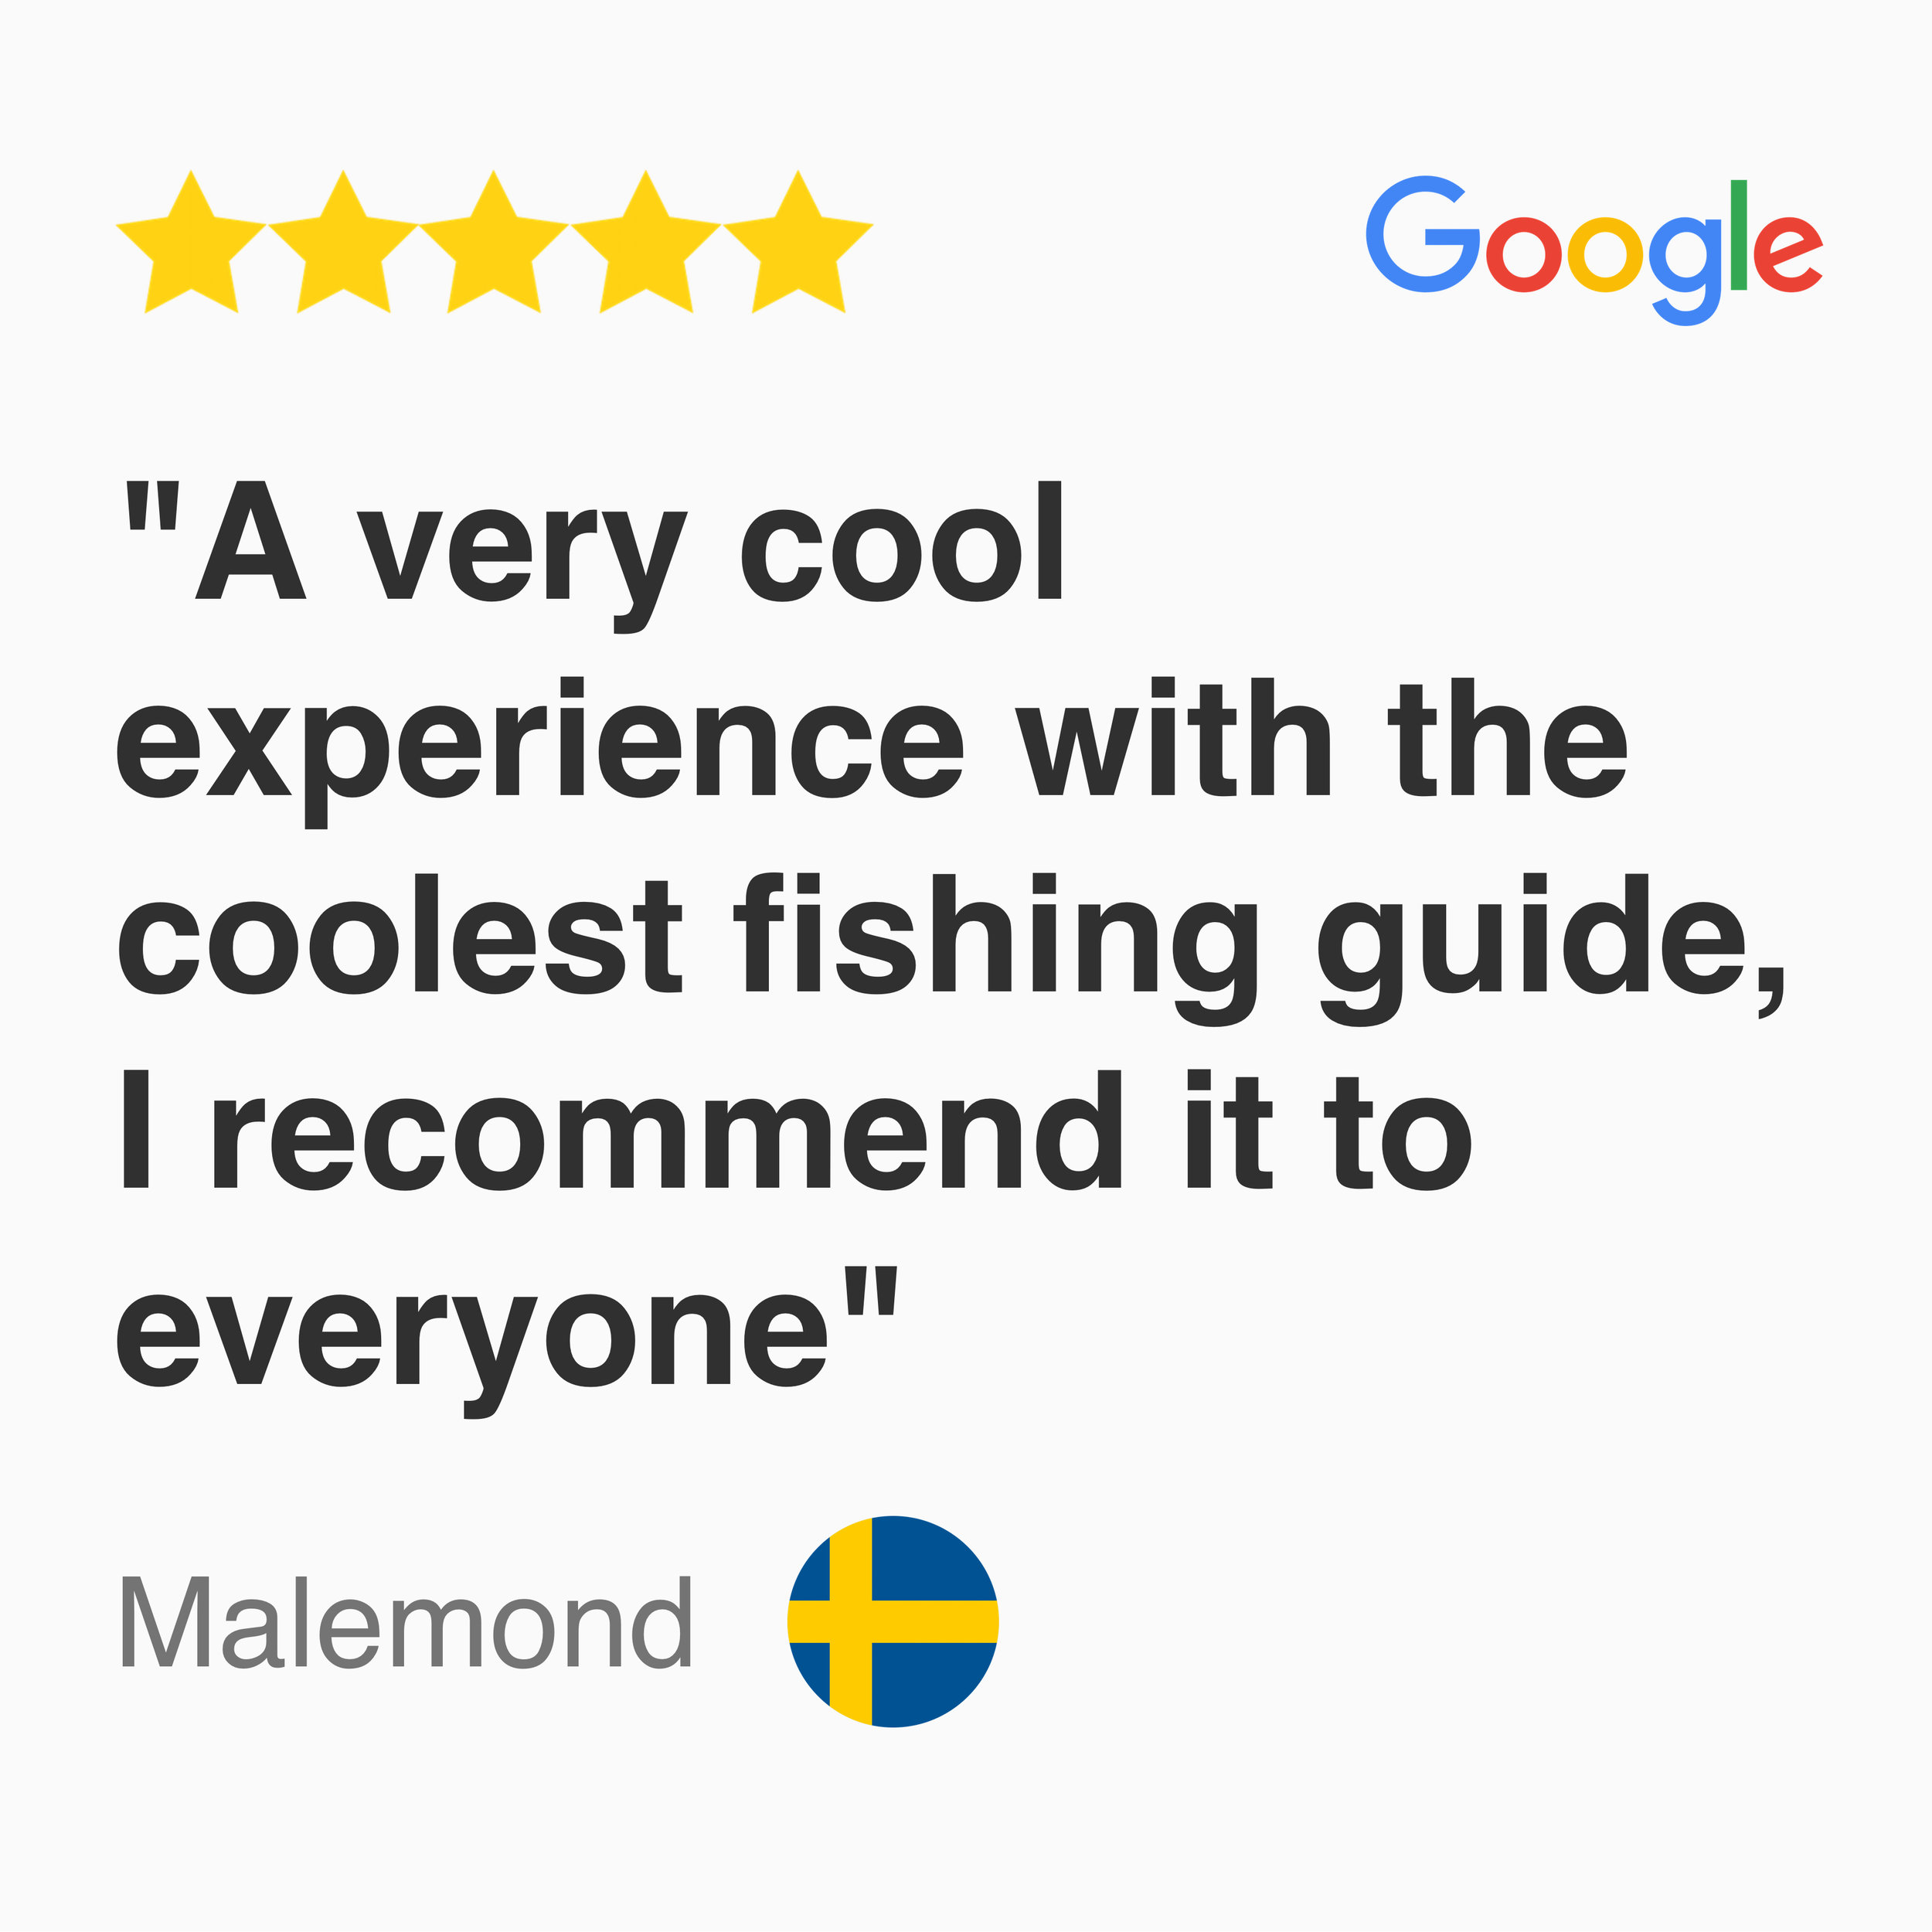 Google review for kayak fishing Singapore tour 'Mangrove Maze': A very cool experience with the coolest fishing guide, I recommend it to everyone